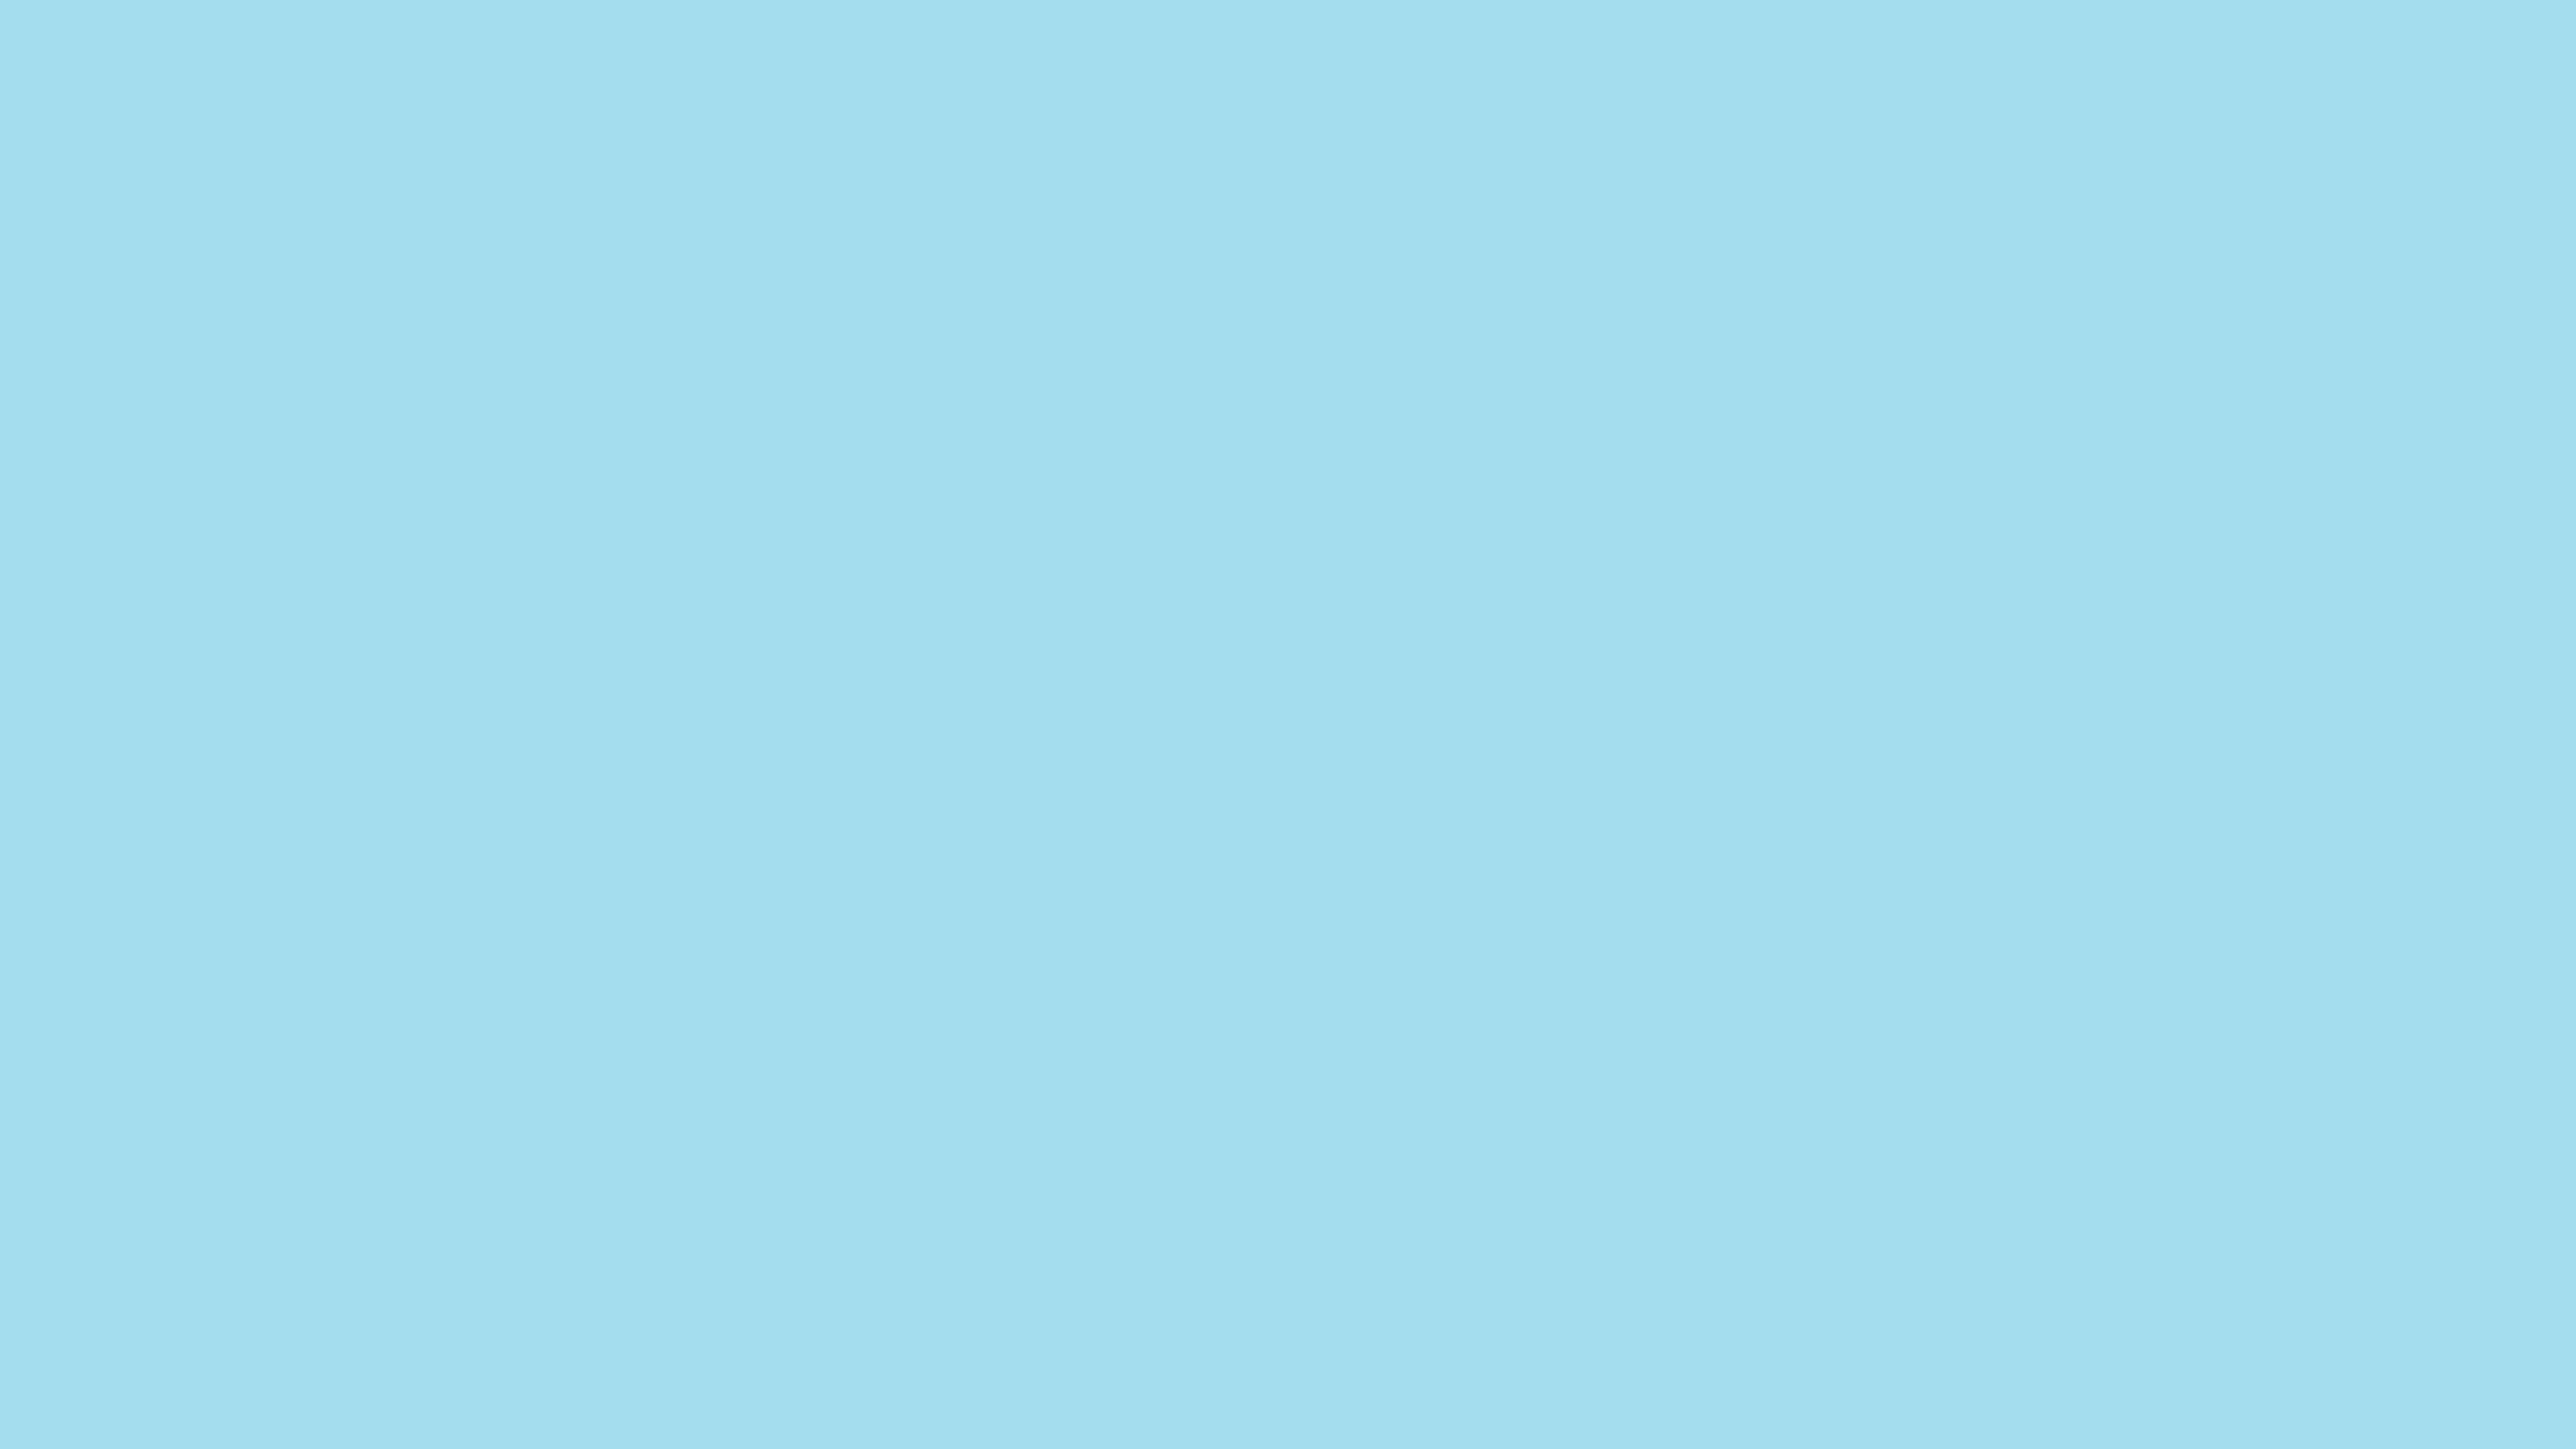 3840x2160 Non-photo Blue Solid Color Background